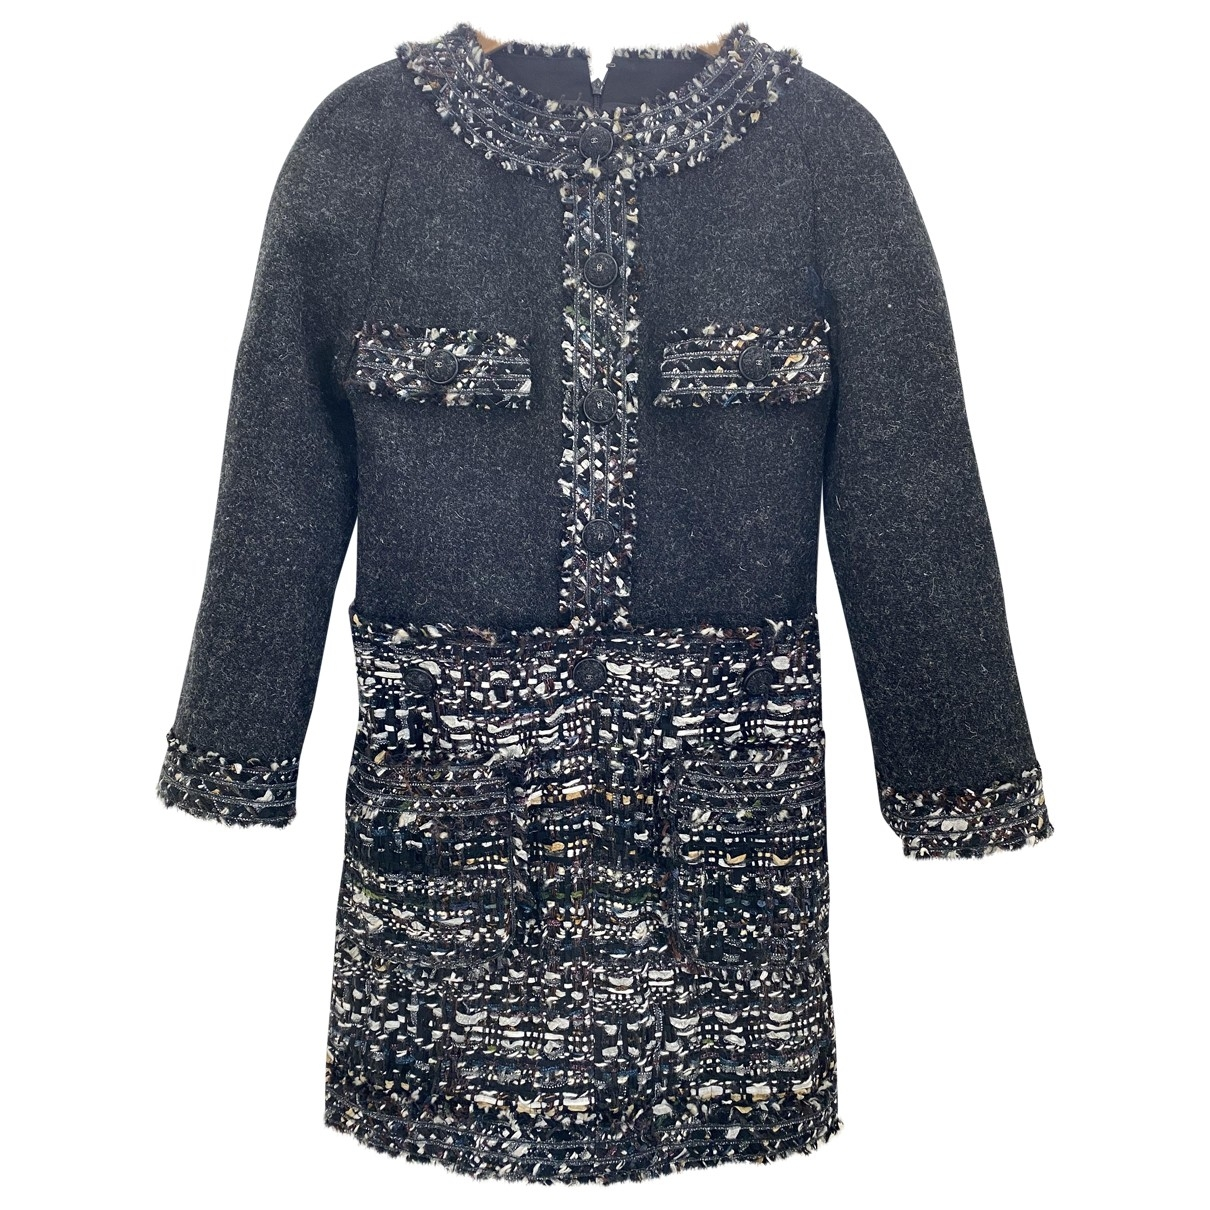 Chanel - Robe   pour femme en tweed - anthracite